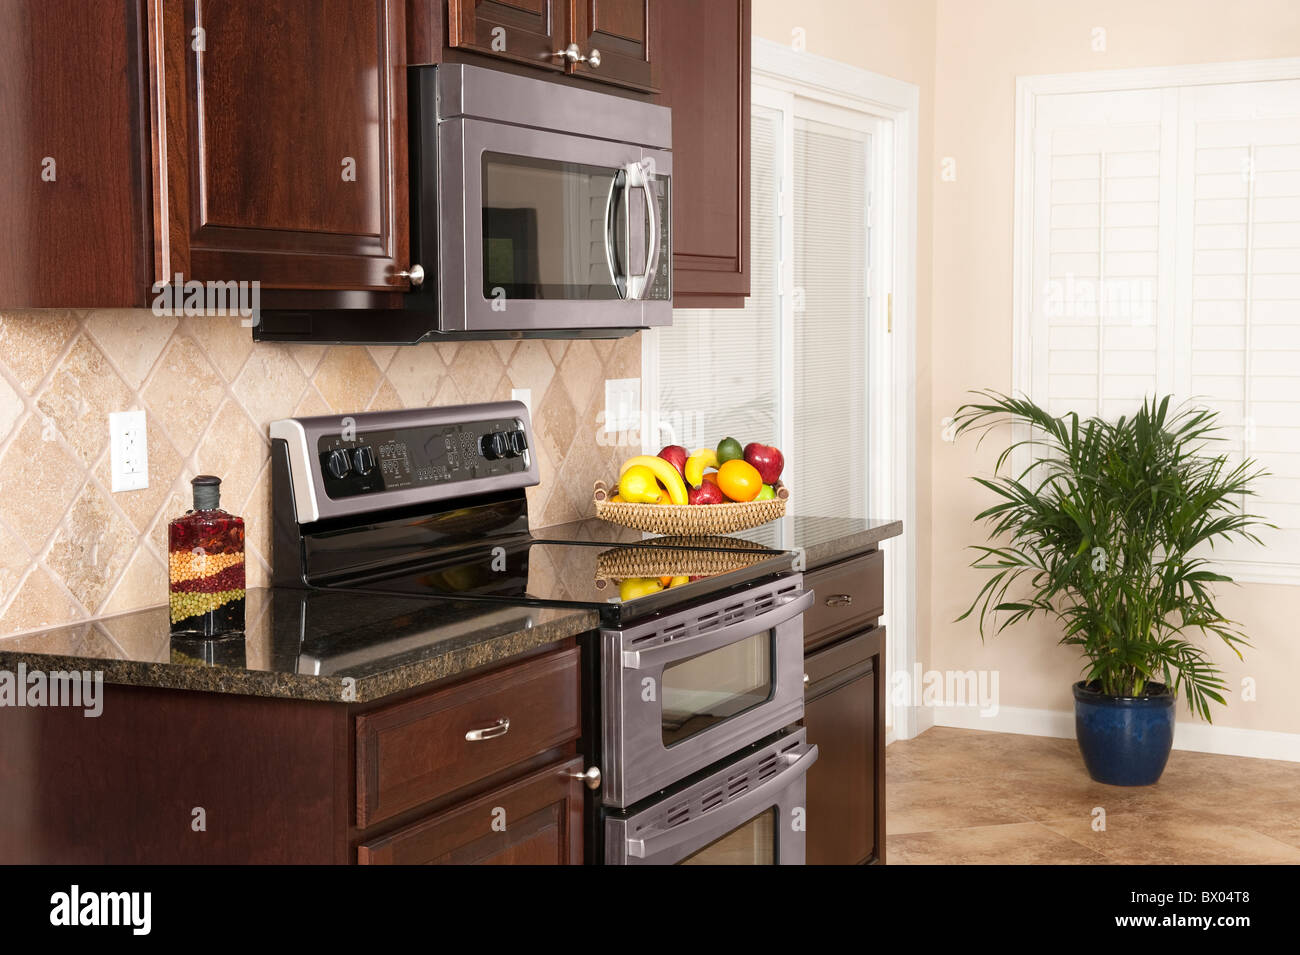 A small modern kitchen with stainless steel appliances, modern cabinetry and beautiful shutters remodeled to an Stock Photo